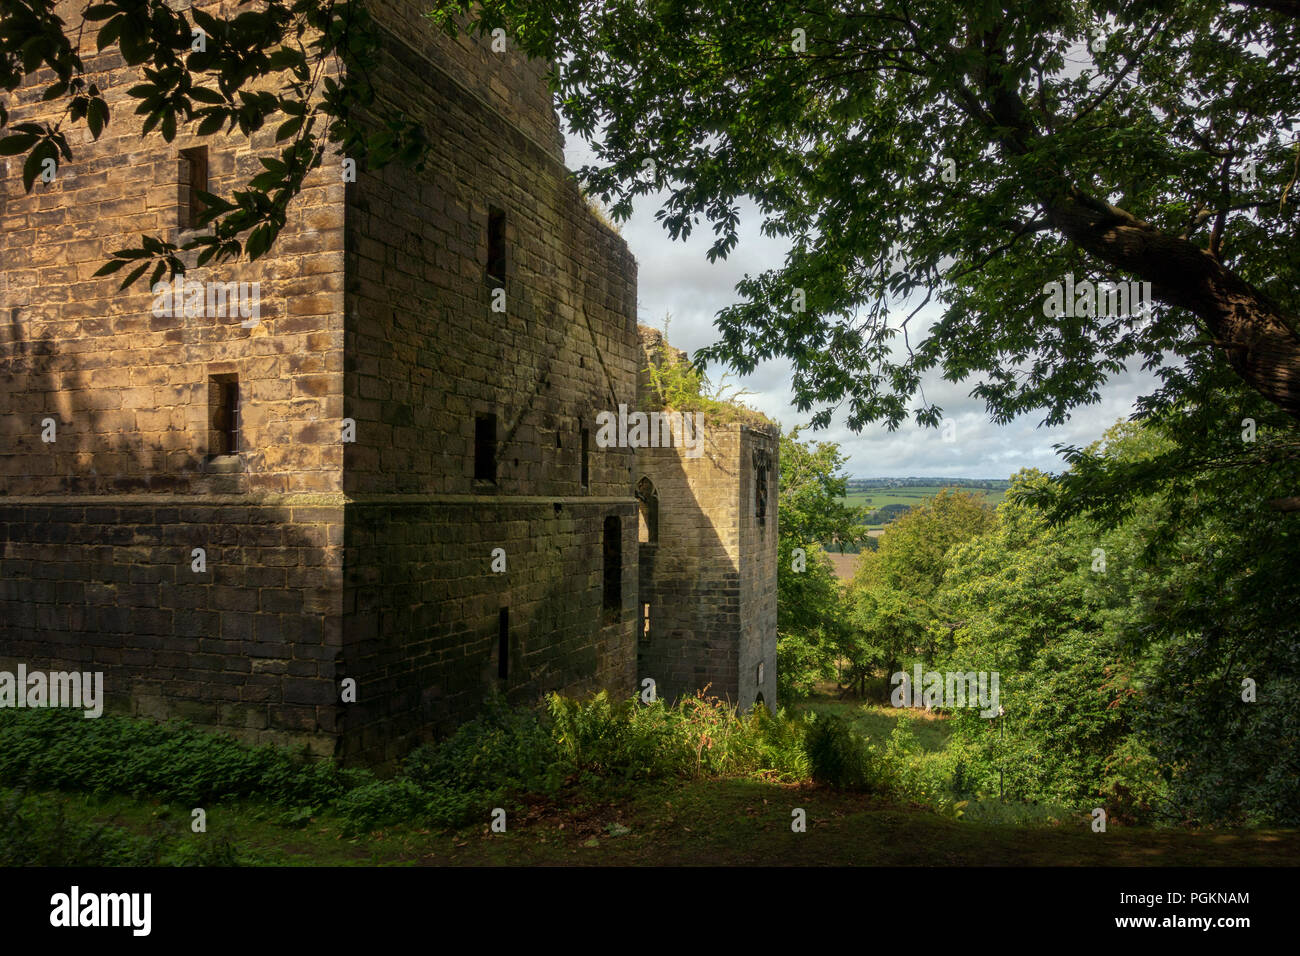 Harewood Castle, a fourteenth century hall house and courtyard located on the Harewood Estate, rescued by the latter and English Heritage, West Yorksh - Stock Image